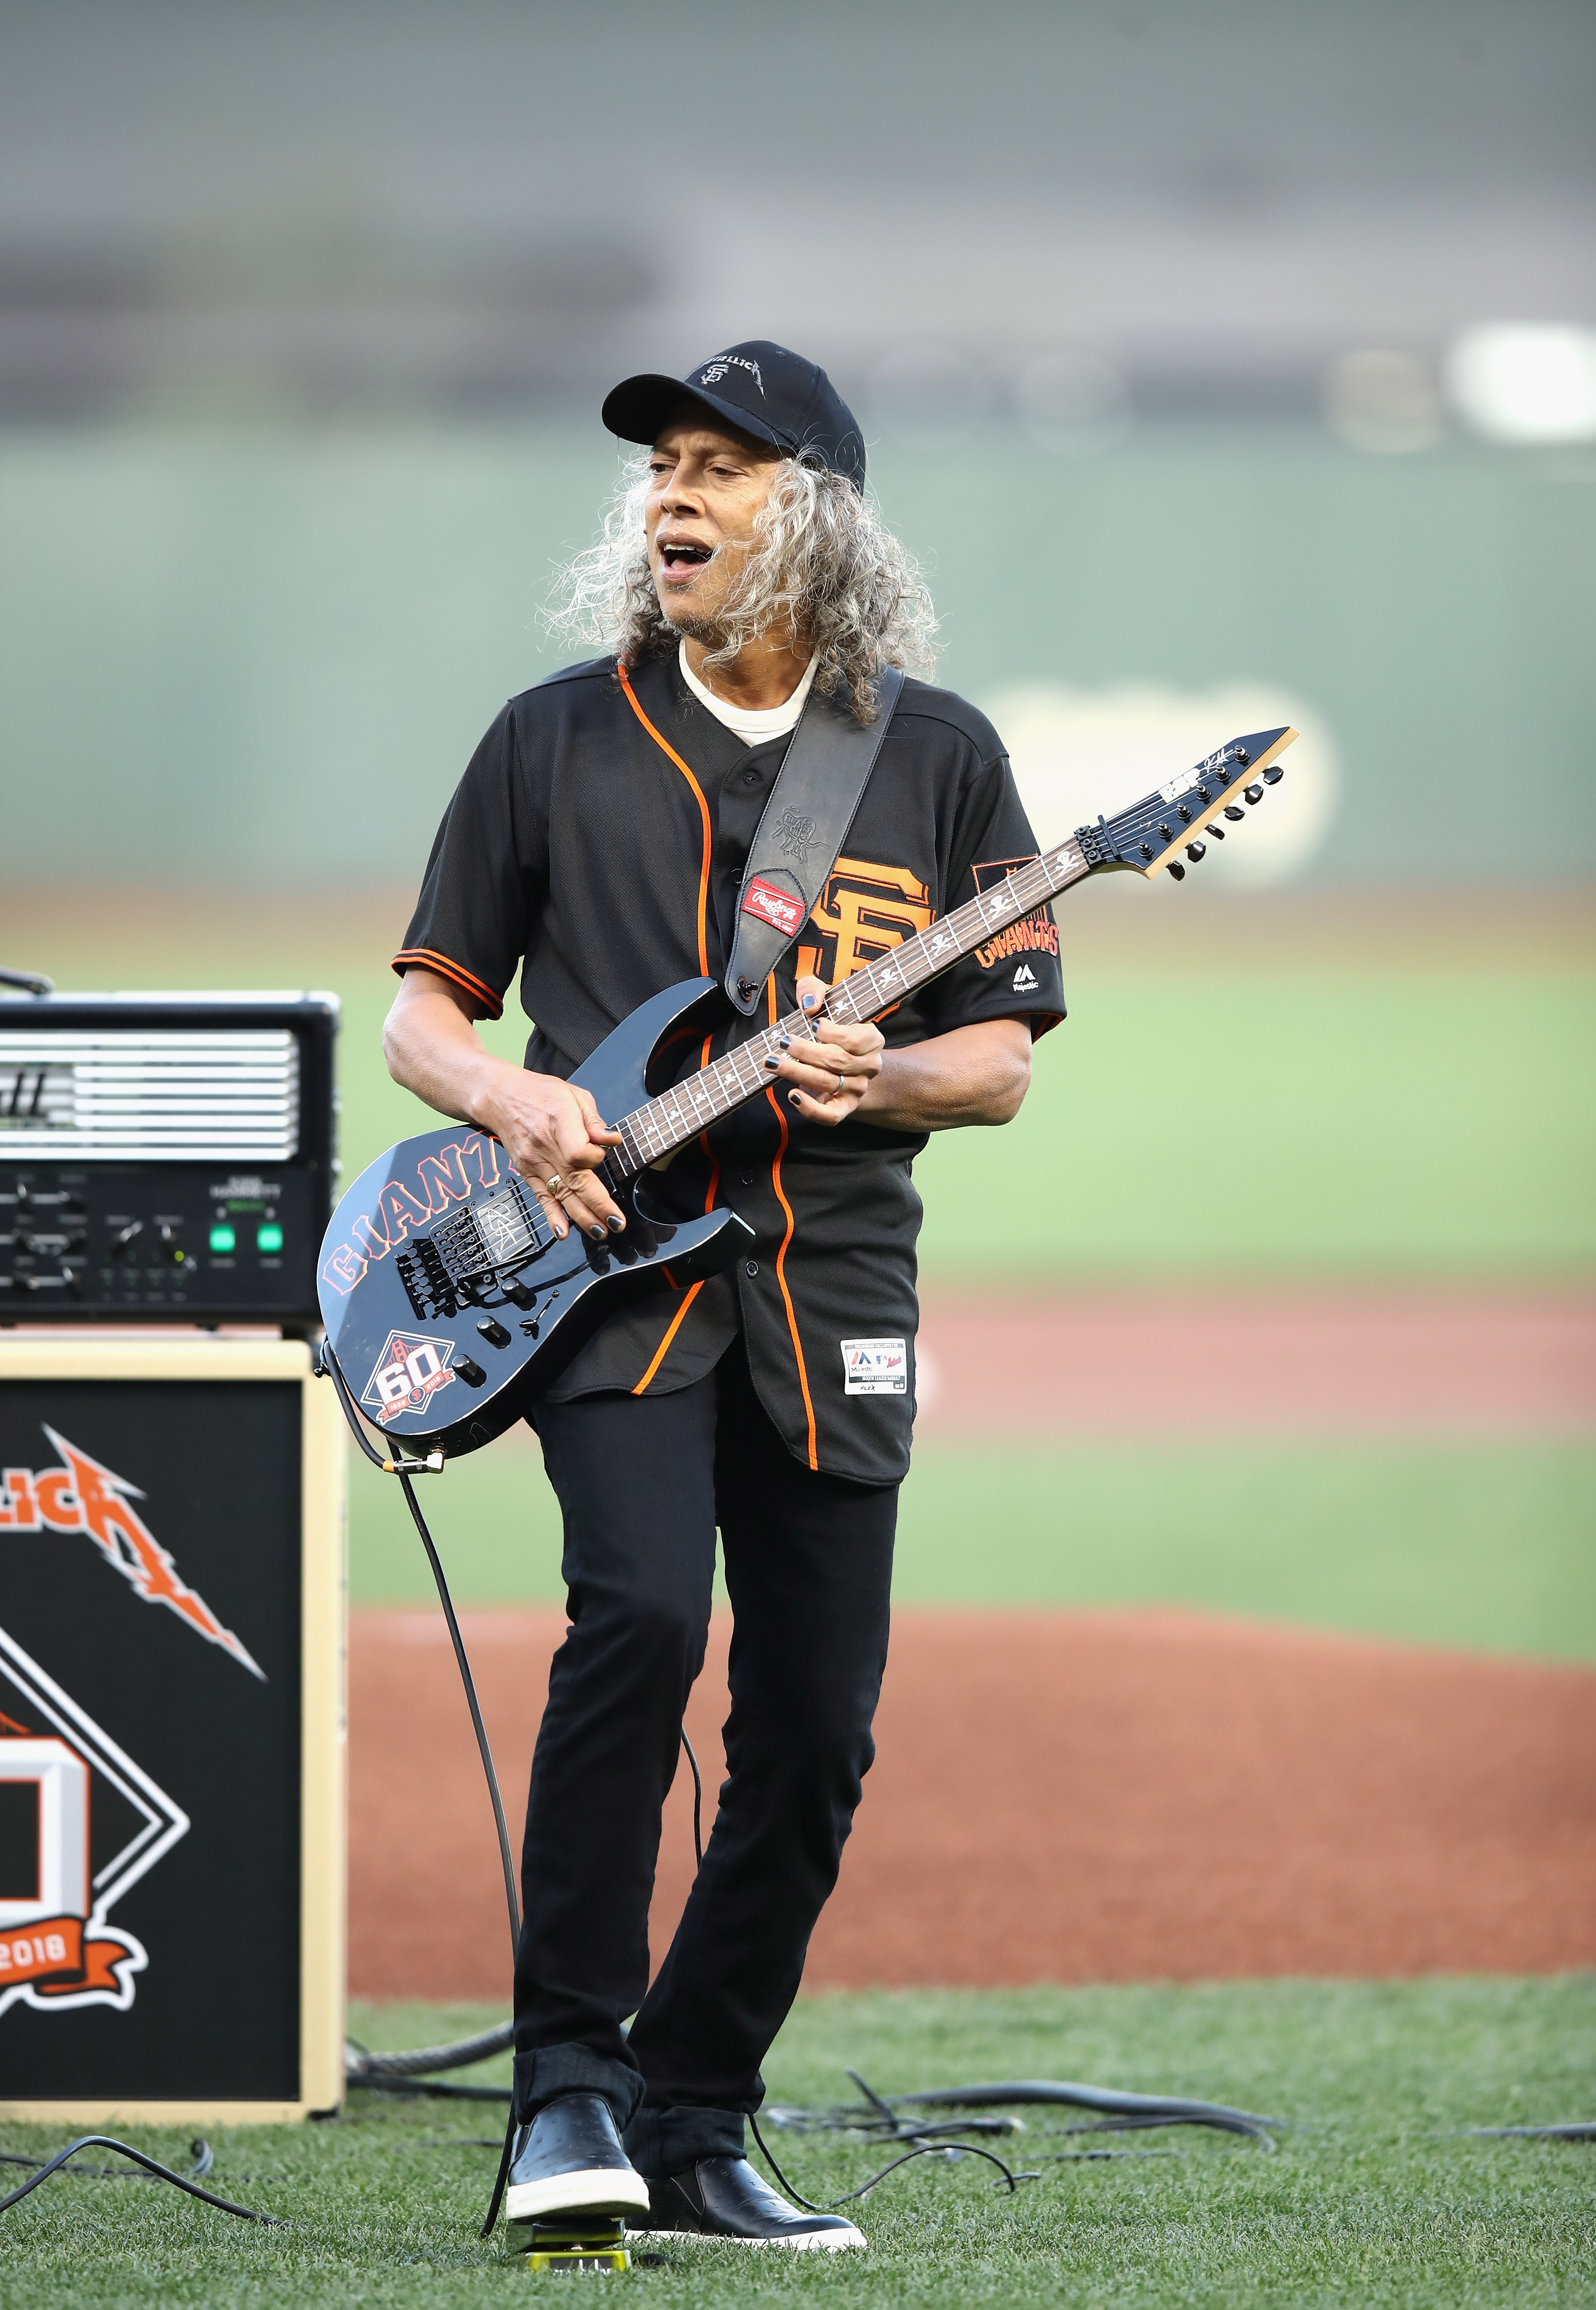 Kirk Hammett with one foot gently planted on his much-used favorite toy - the wah-wah pedal. (Image Source: Getty Images)